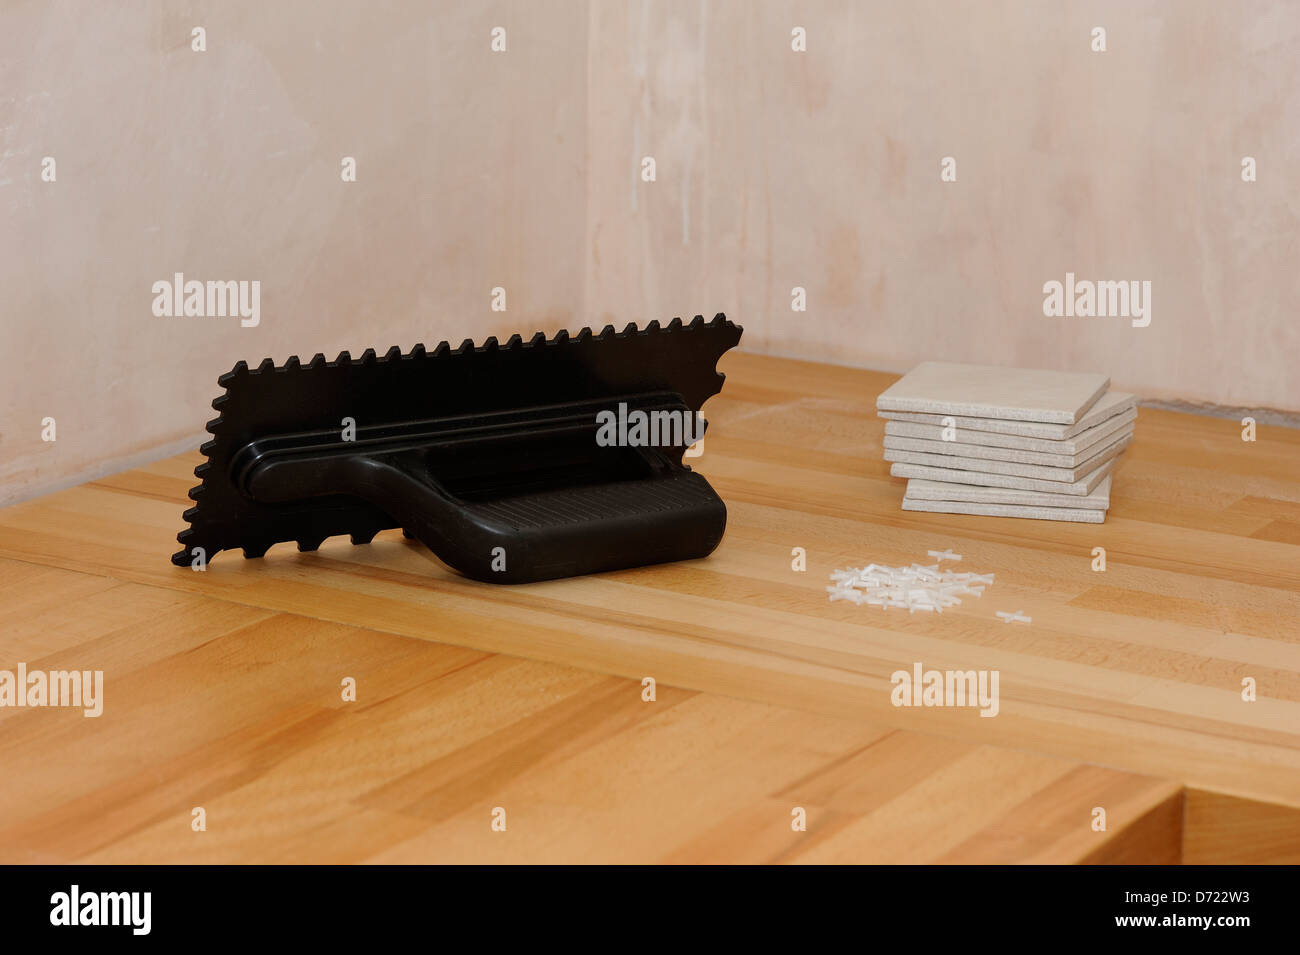 Tile Spacers Stock Photos & Tile Spacers Stock Images - Alamy